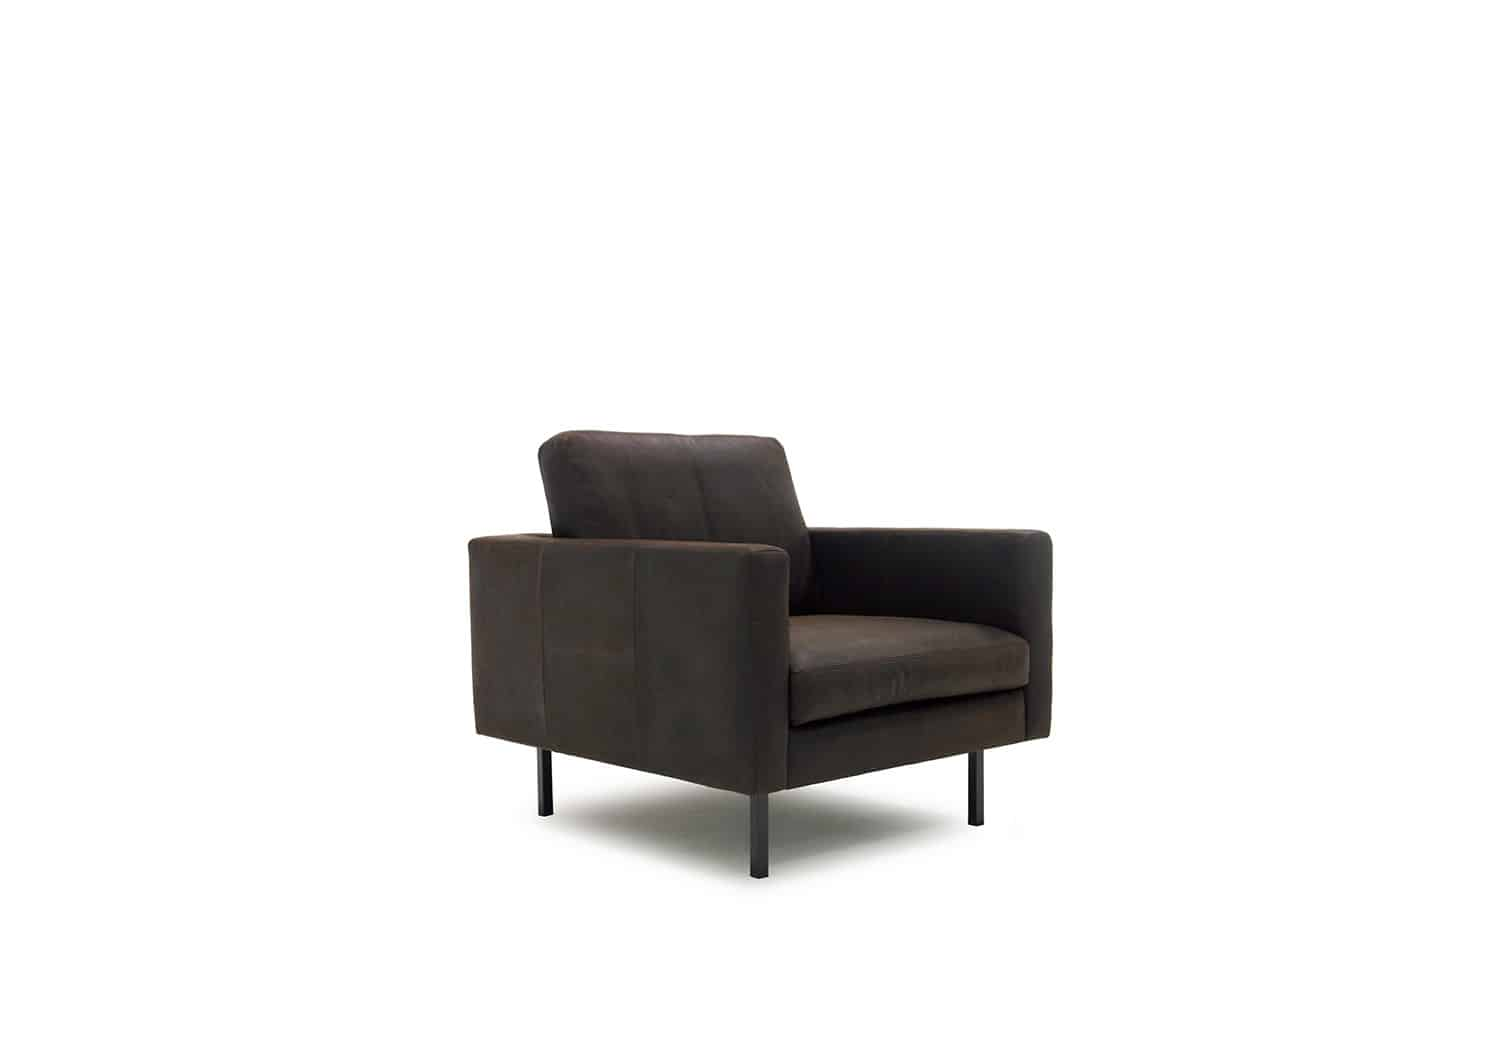 Carrera Sessel Sofa Buster Tommy M